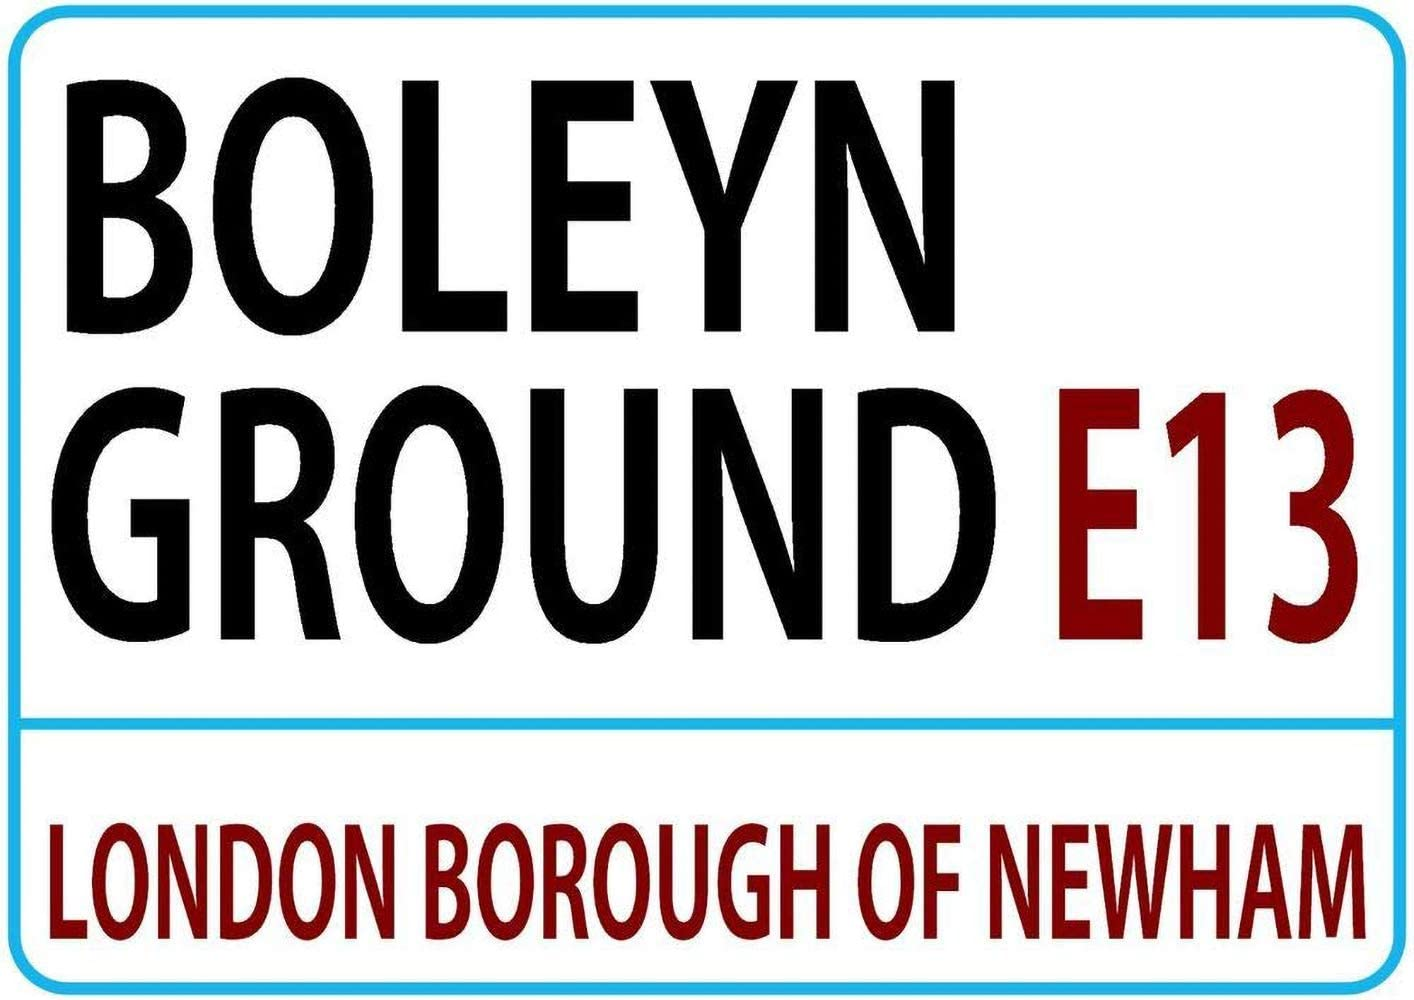 Boleyn Ground London Street West Ham Football Team Tin Wall Sign Metal Plaque Poster Retro Hanging Art Iron Painting Vintage Band Yard Garden Warning Cafe Bar Pub Office Stadium Cinema Toilet Gift